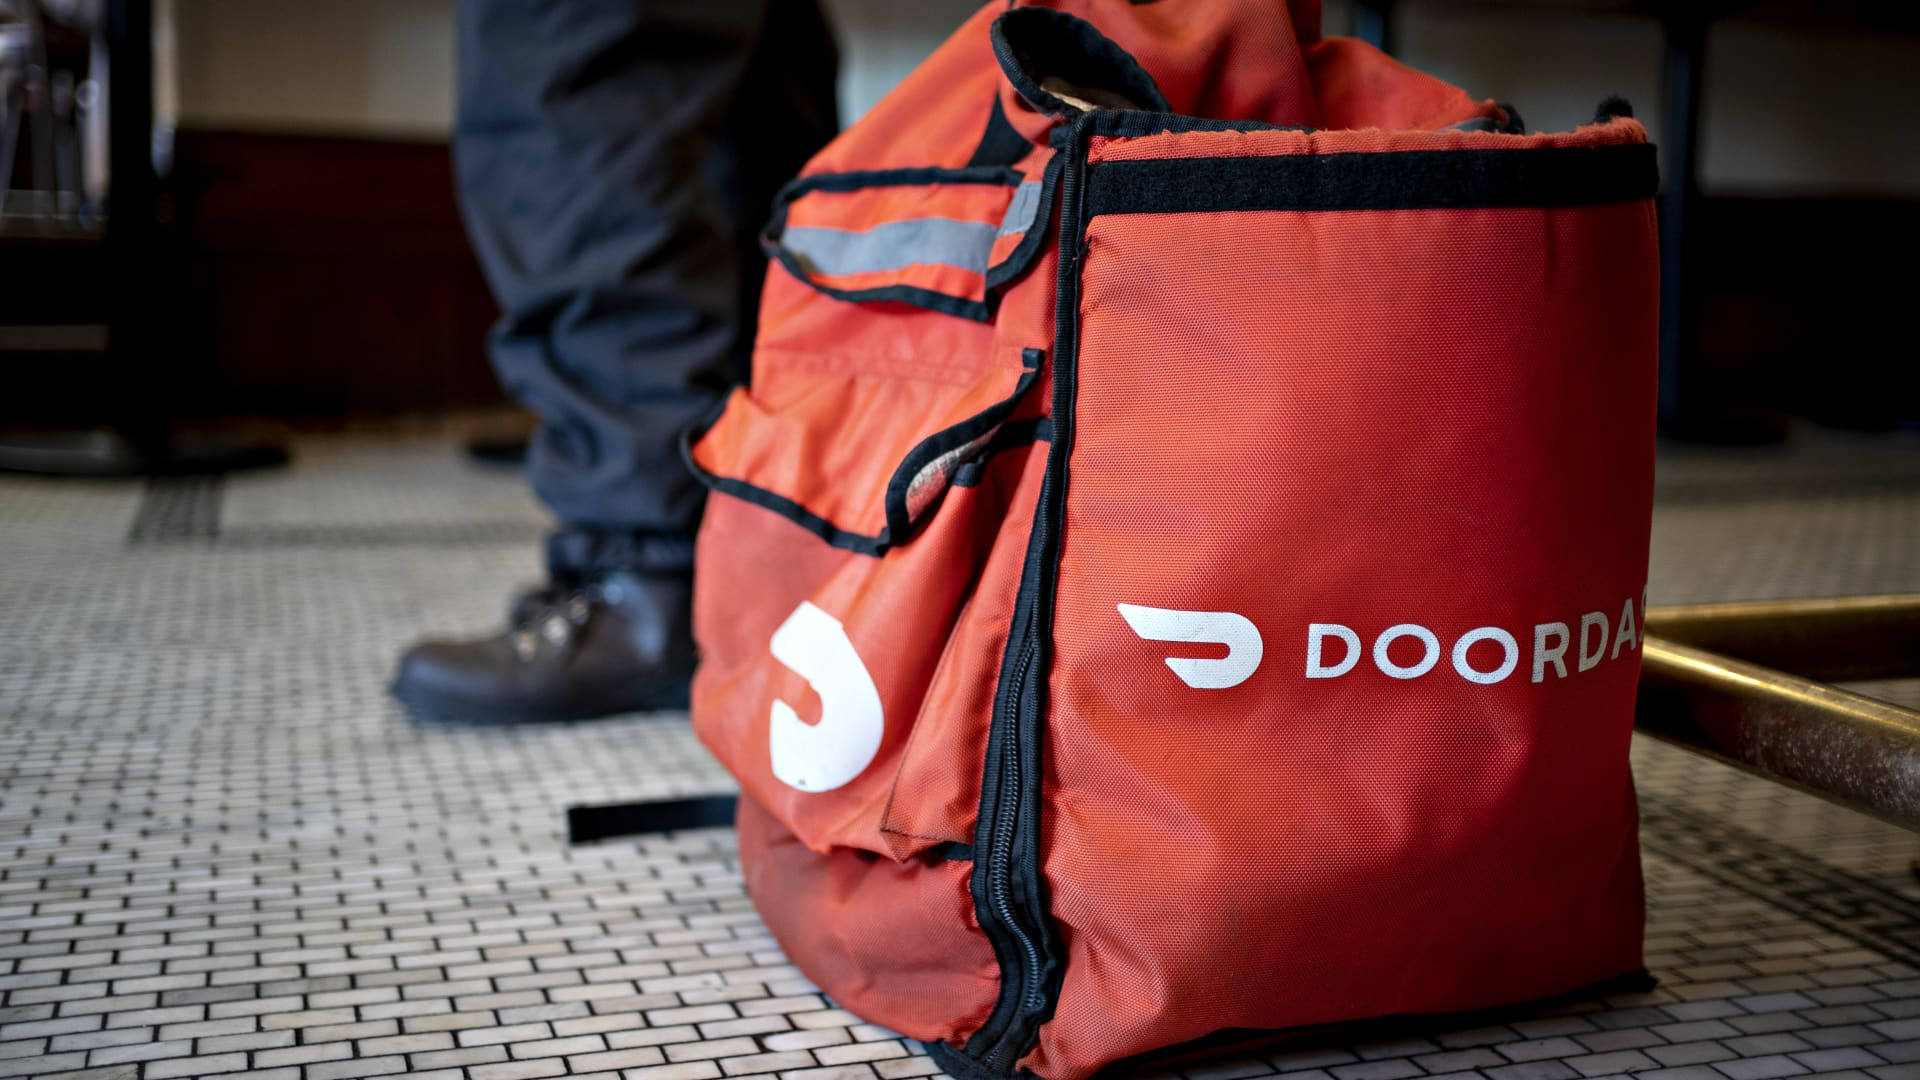 A DoorDash Inc. delivery bag sits on the floor at Chef Geoff's restaurant in Washington, D.C.